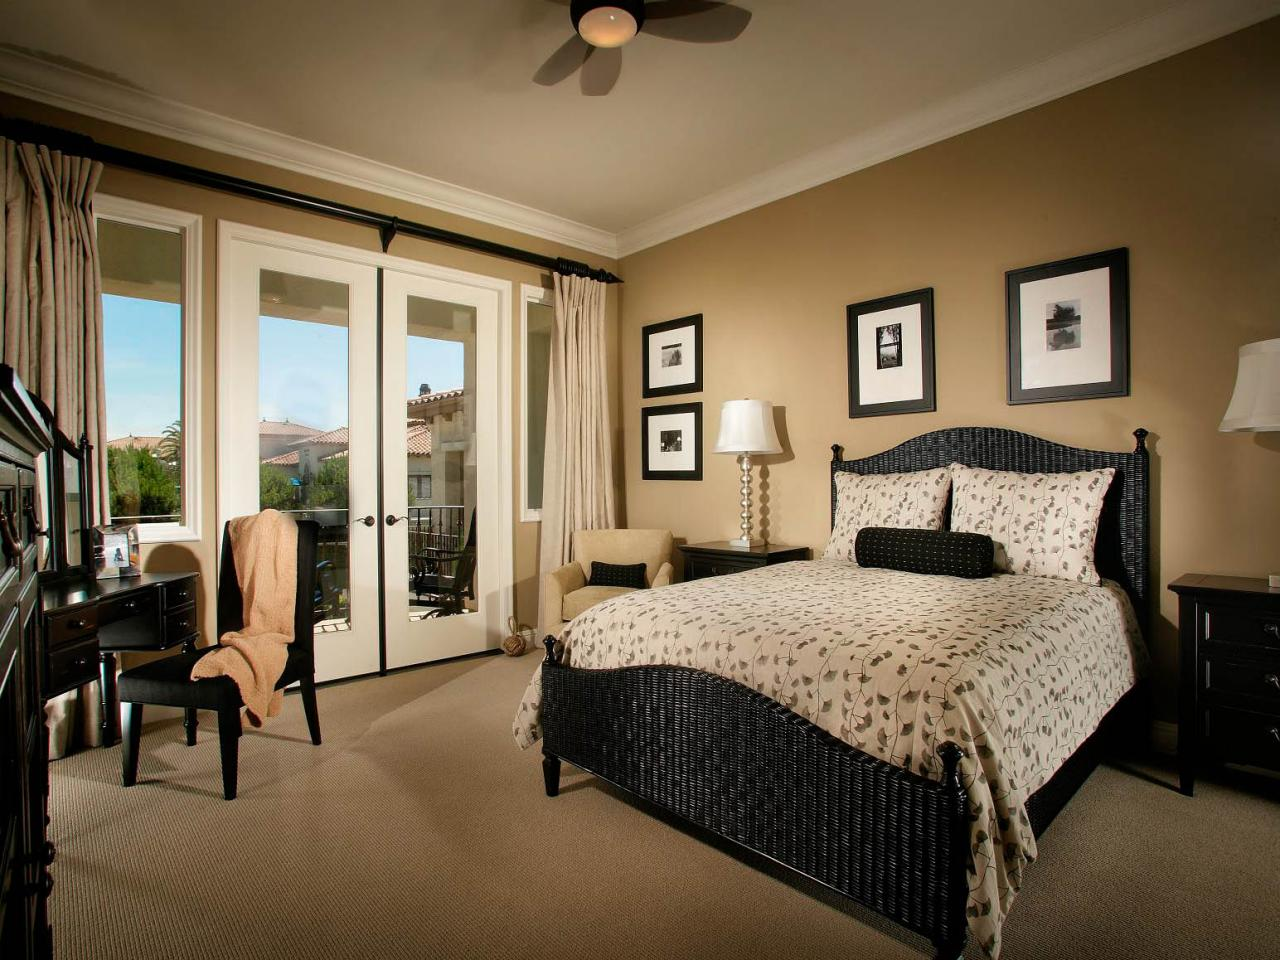 Beige and black bedroom